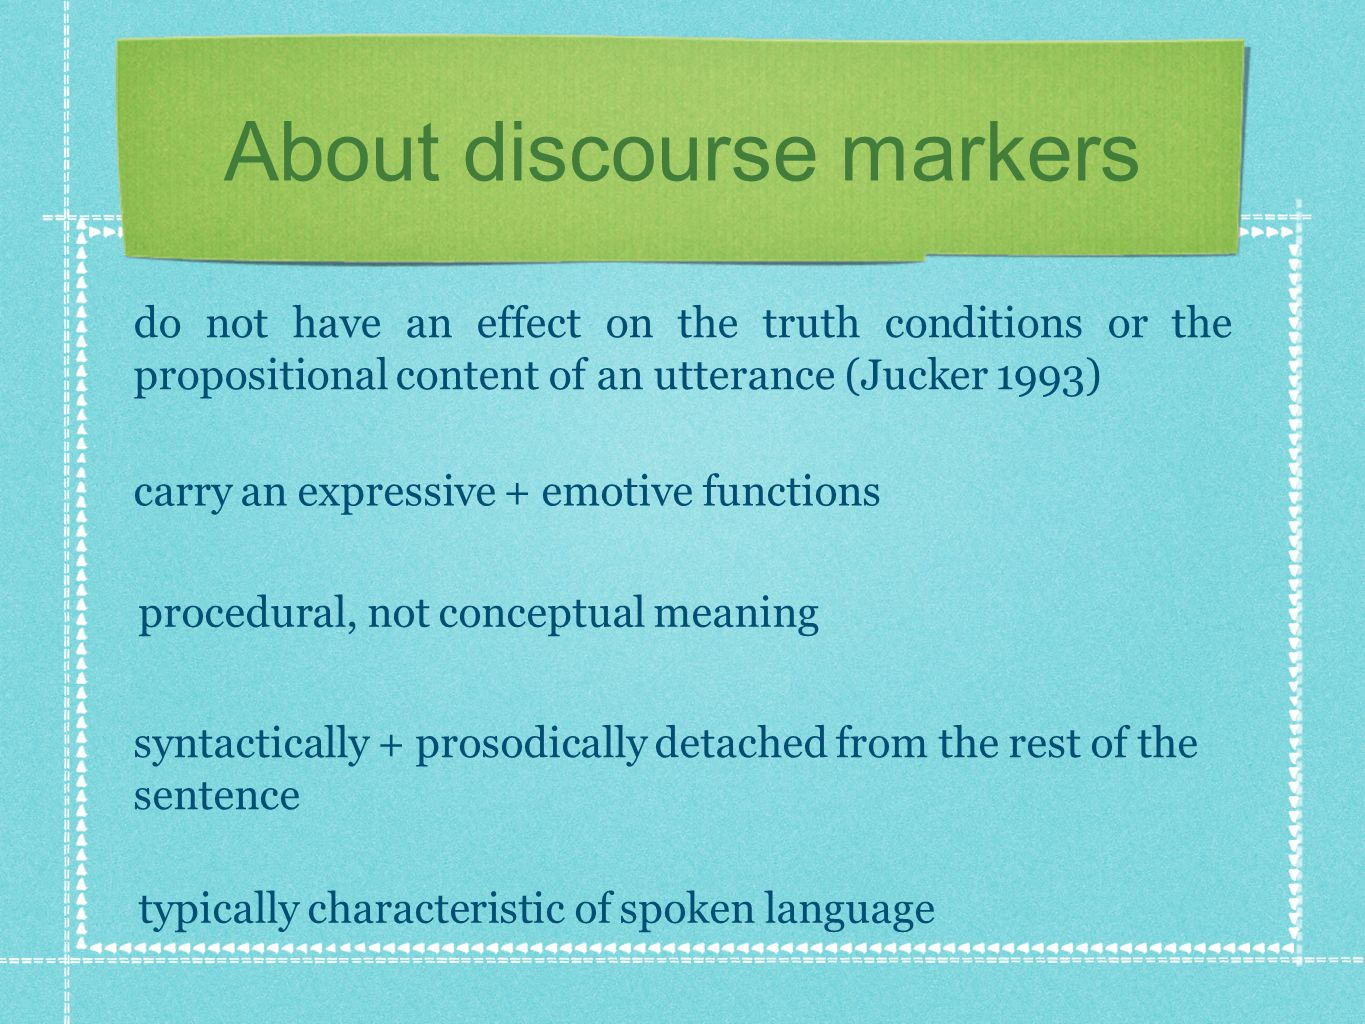 About discourse markers do not have an effect on the truth conditions or the propositional content of an utterance (Jucker 1993) carry an expressive +